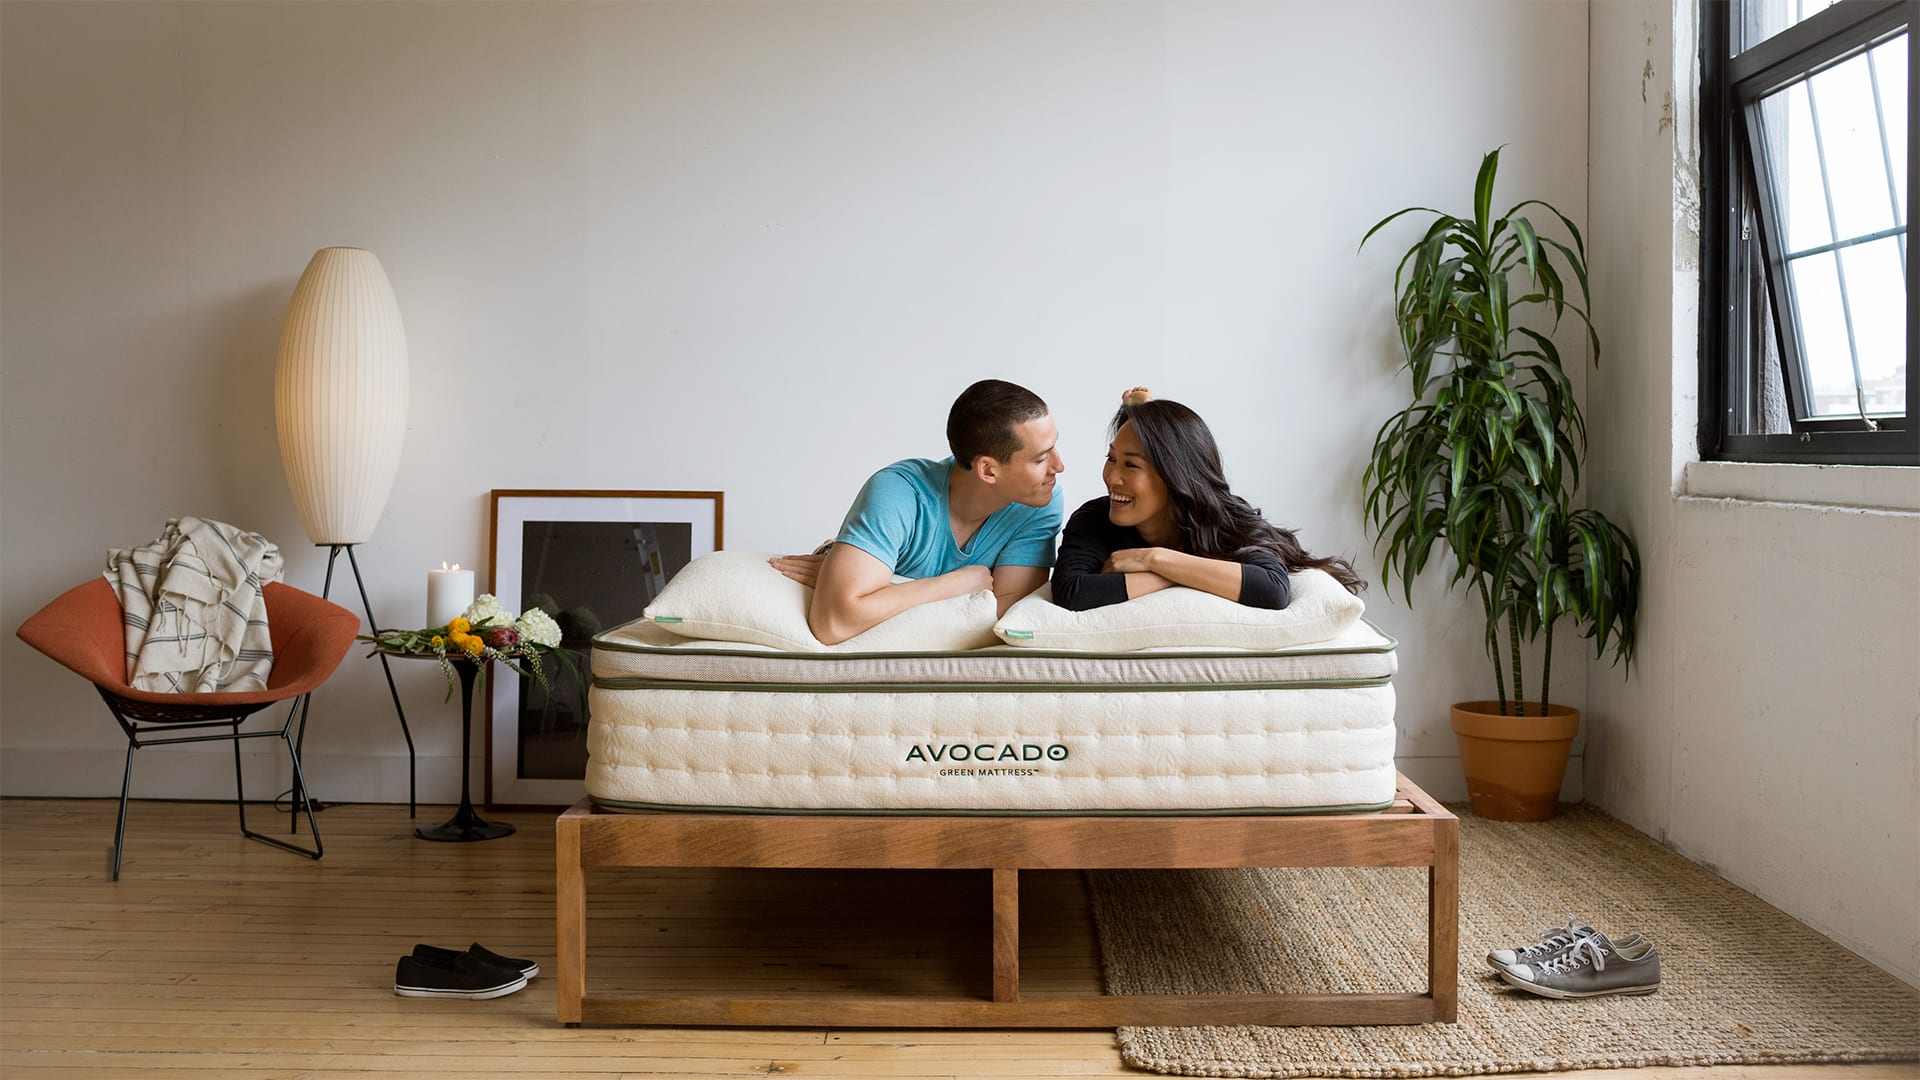 Nontoxic Mattress from Avocado